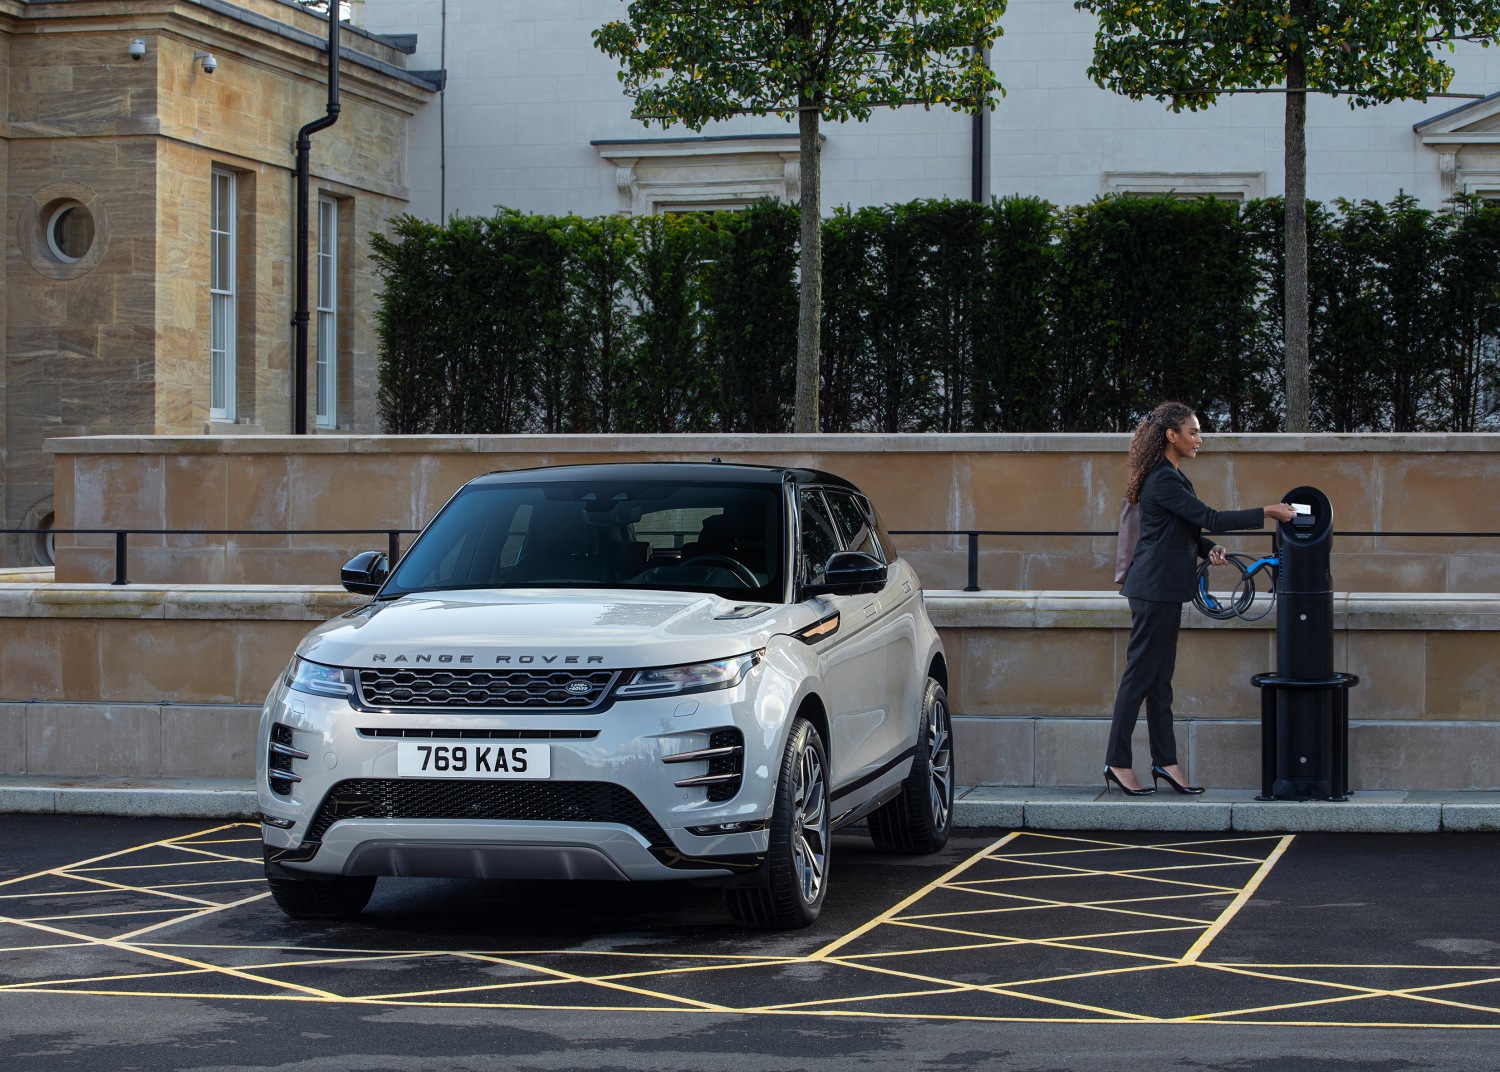 BESTSELLING RANGE ROVER EVOQUE NOW AVAILABLE AS PLUG-IN HYBRID